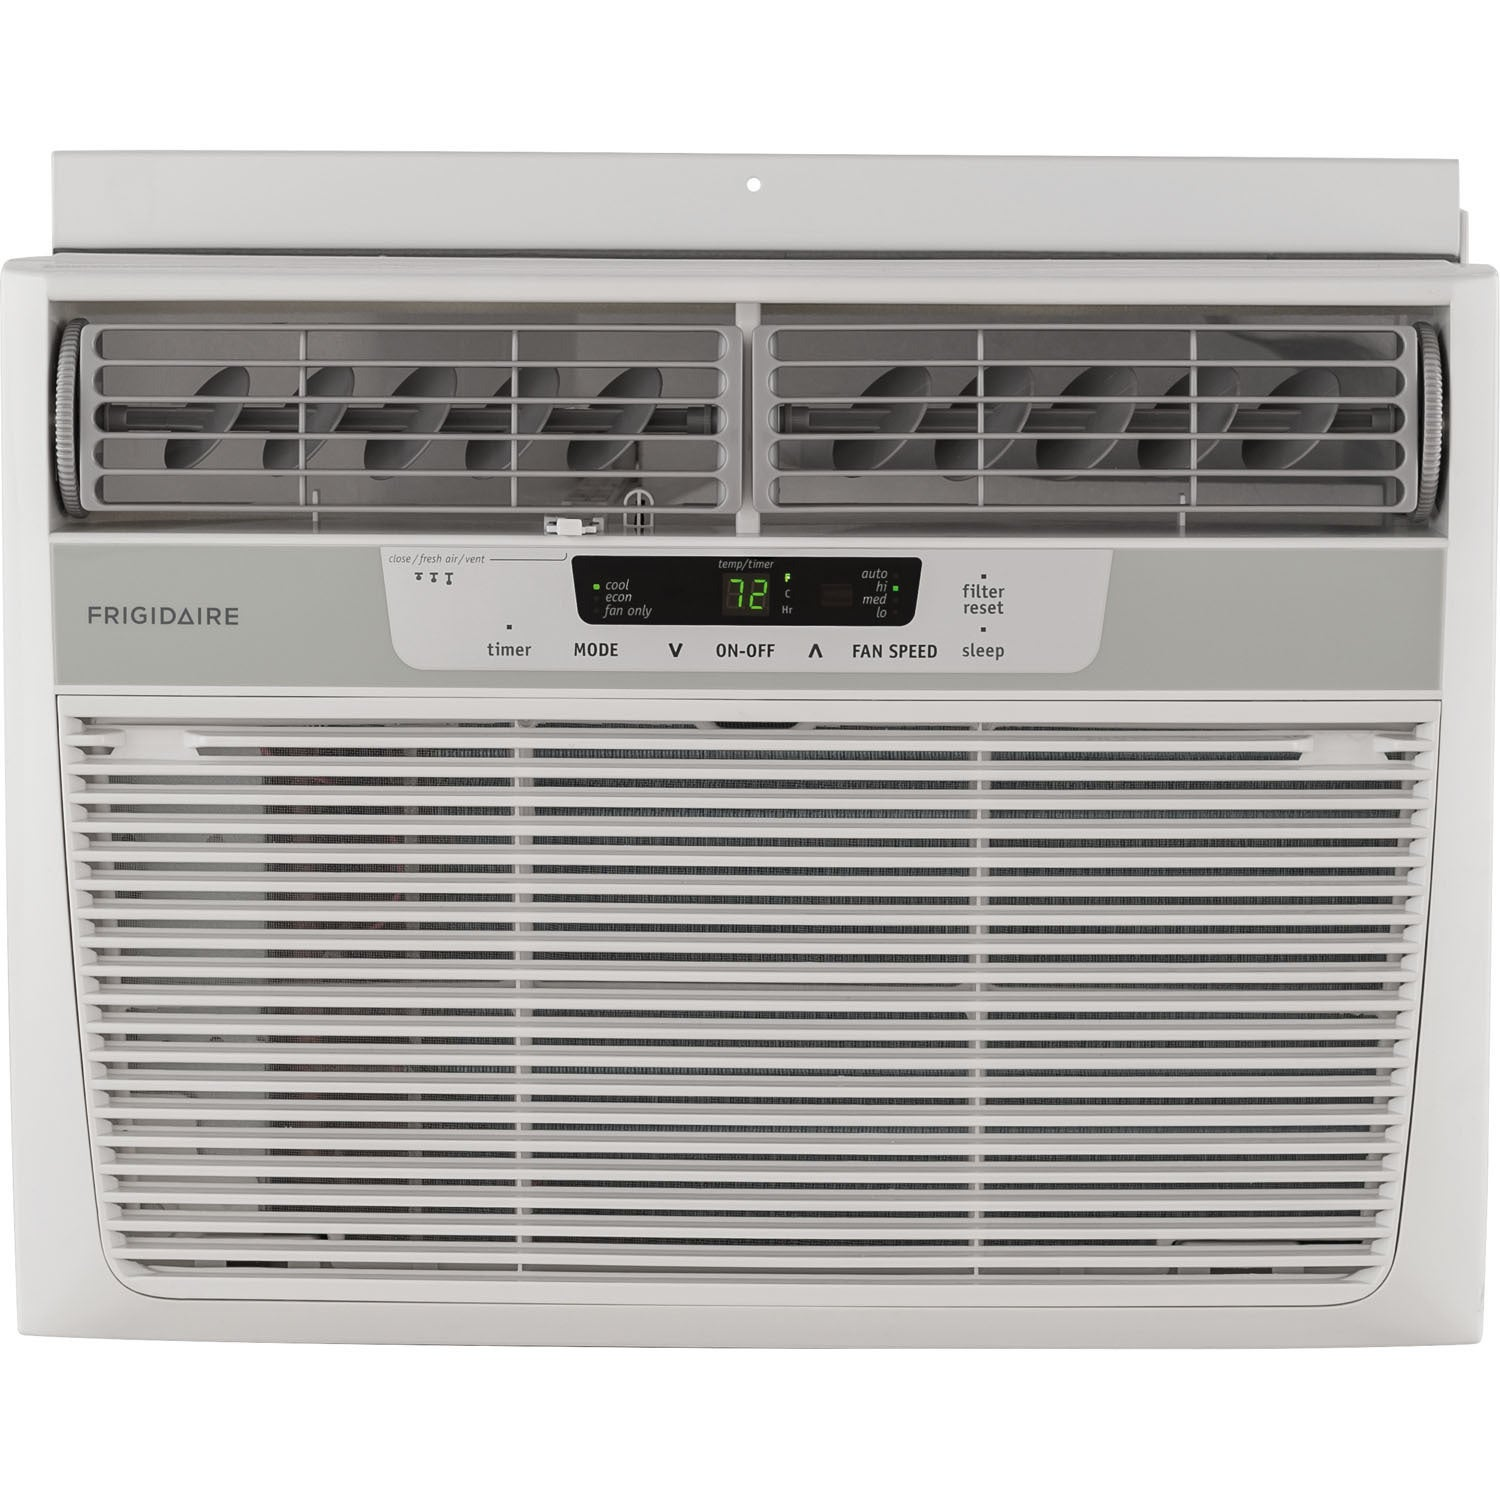 Frigidaire FFRA1022R1 10,000 BTU 115V Window-Mounted Comp...